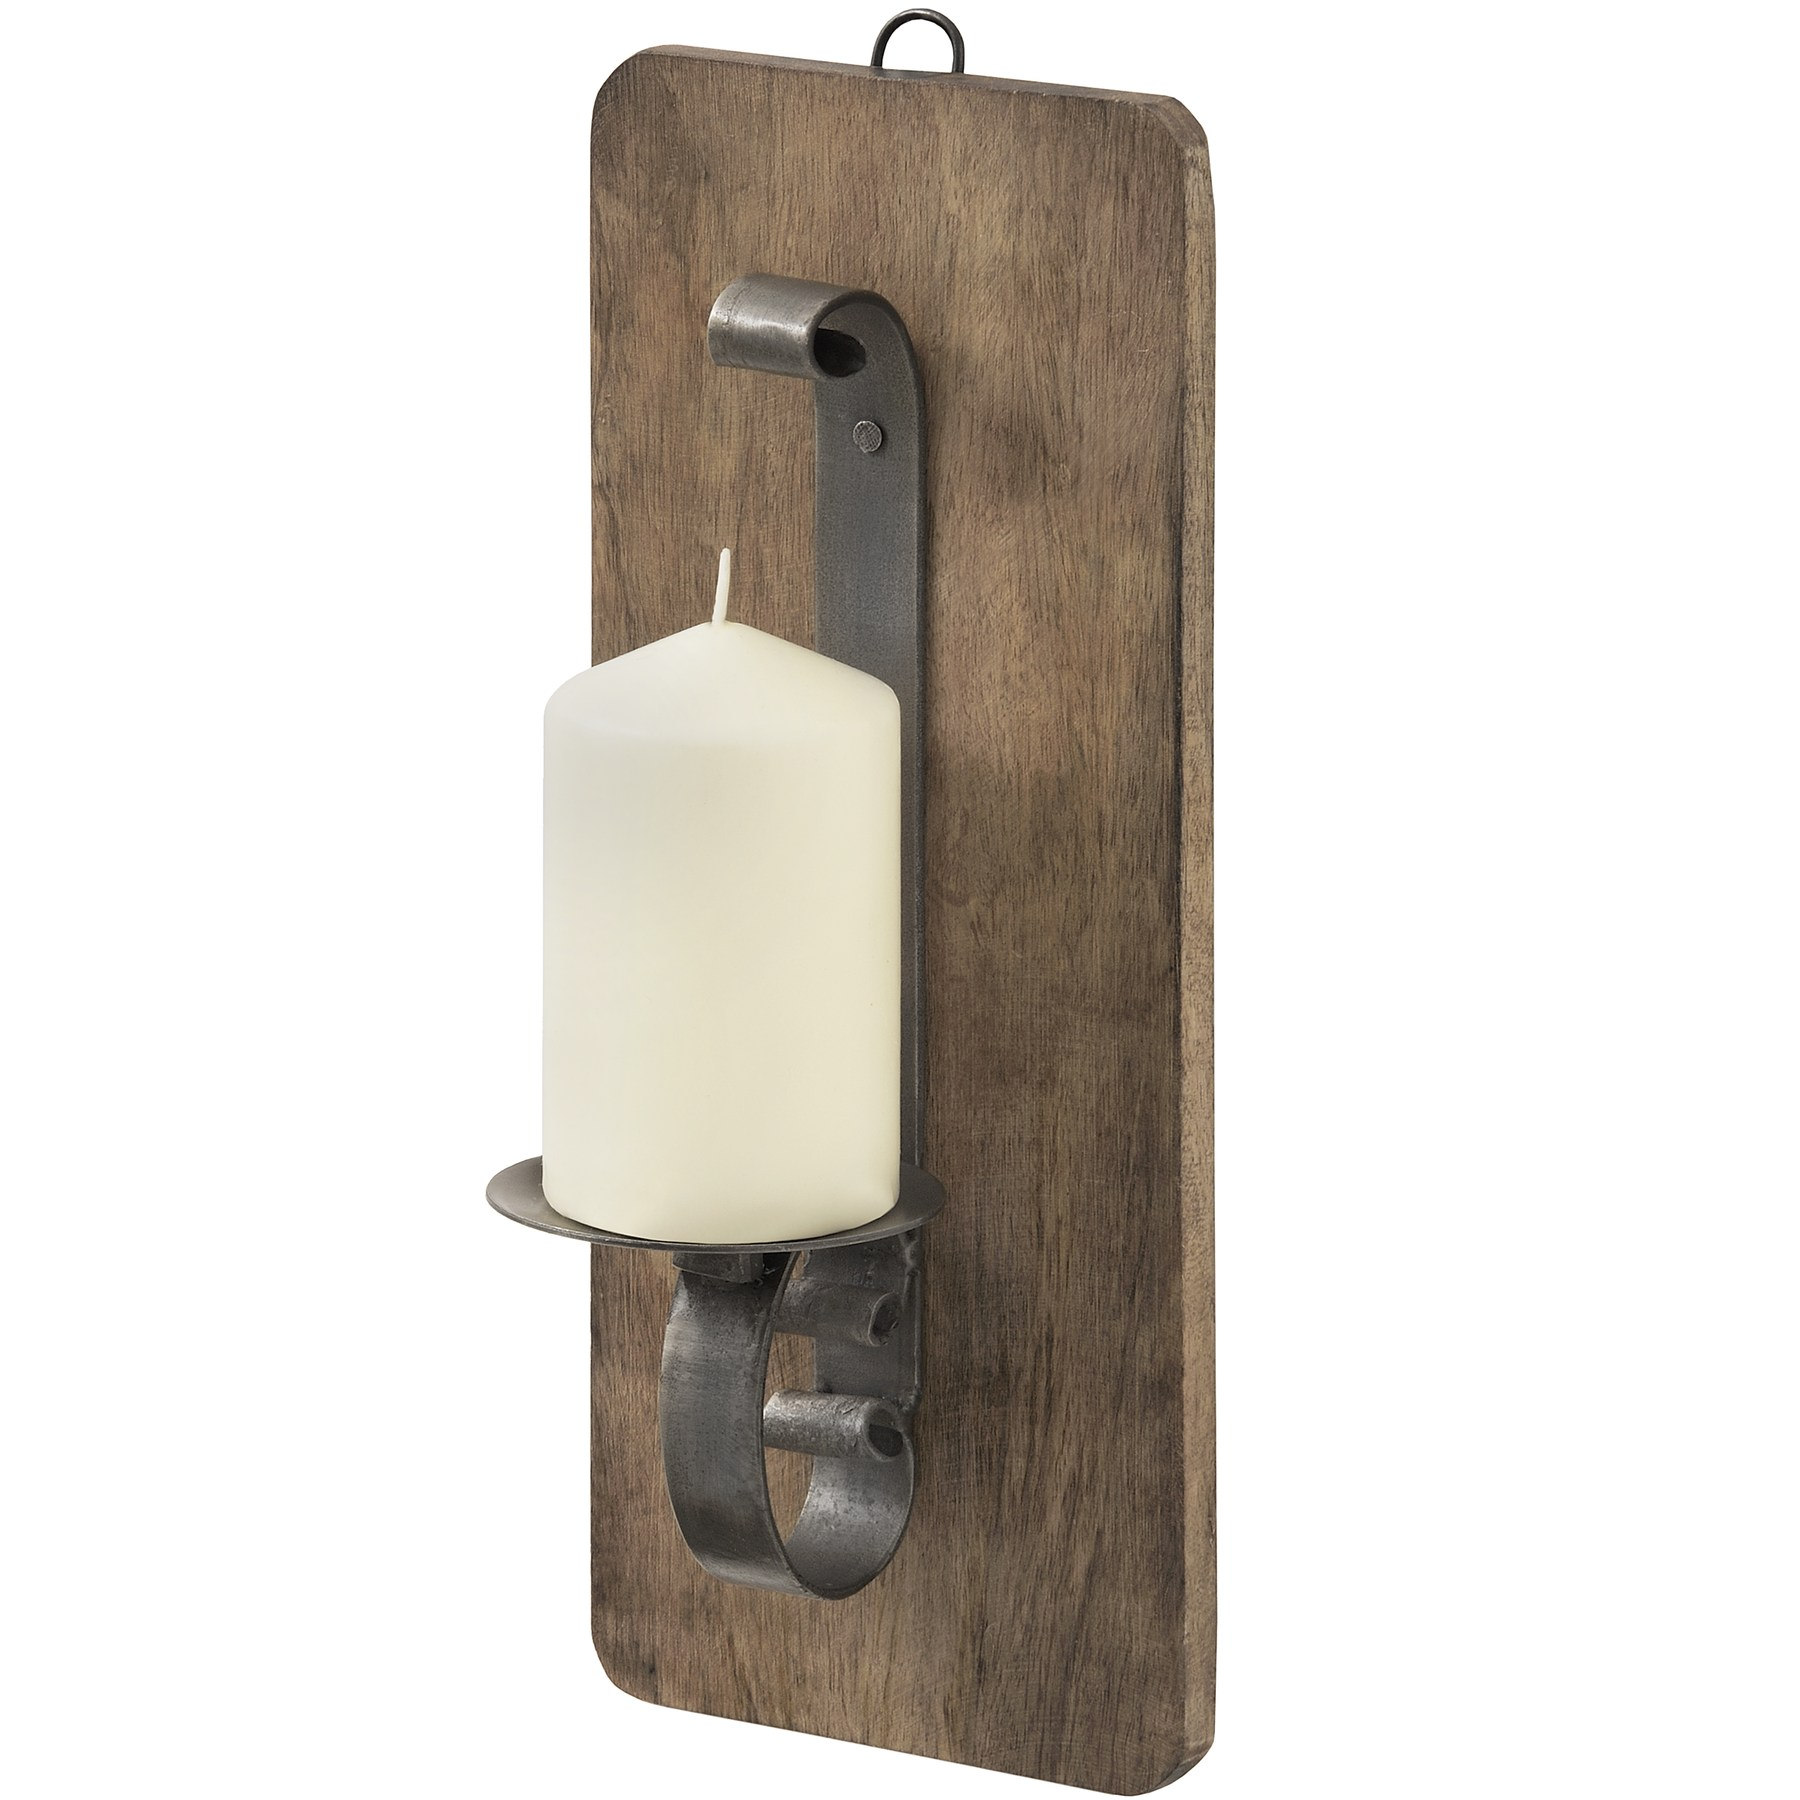 Medium Wrought Iron Wall Candle Sconce W/Hardwood Backplate